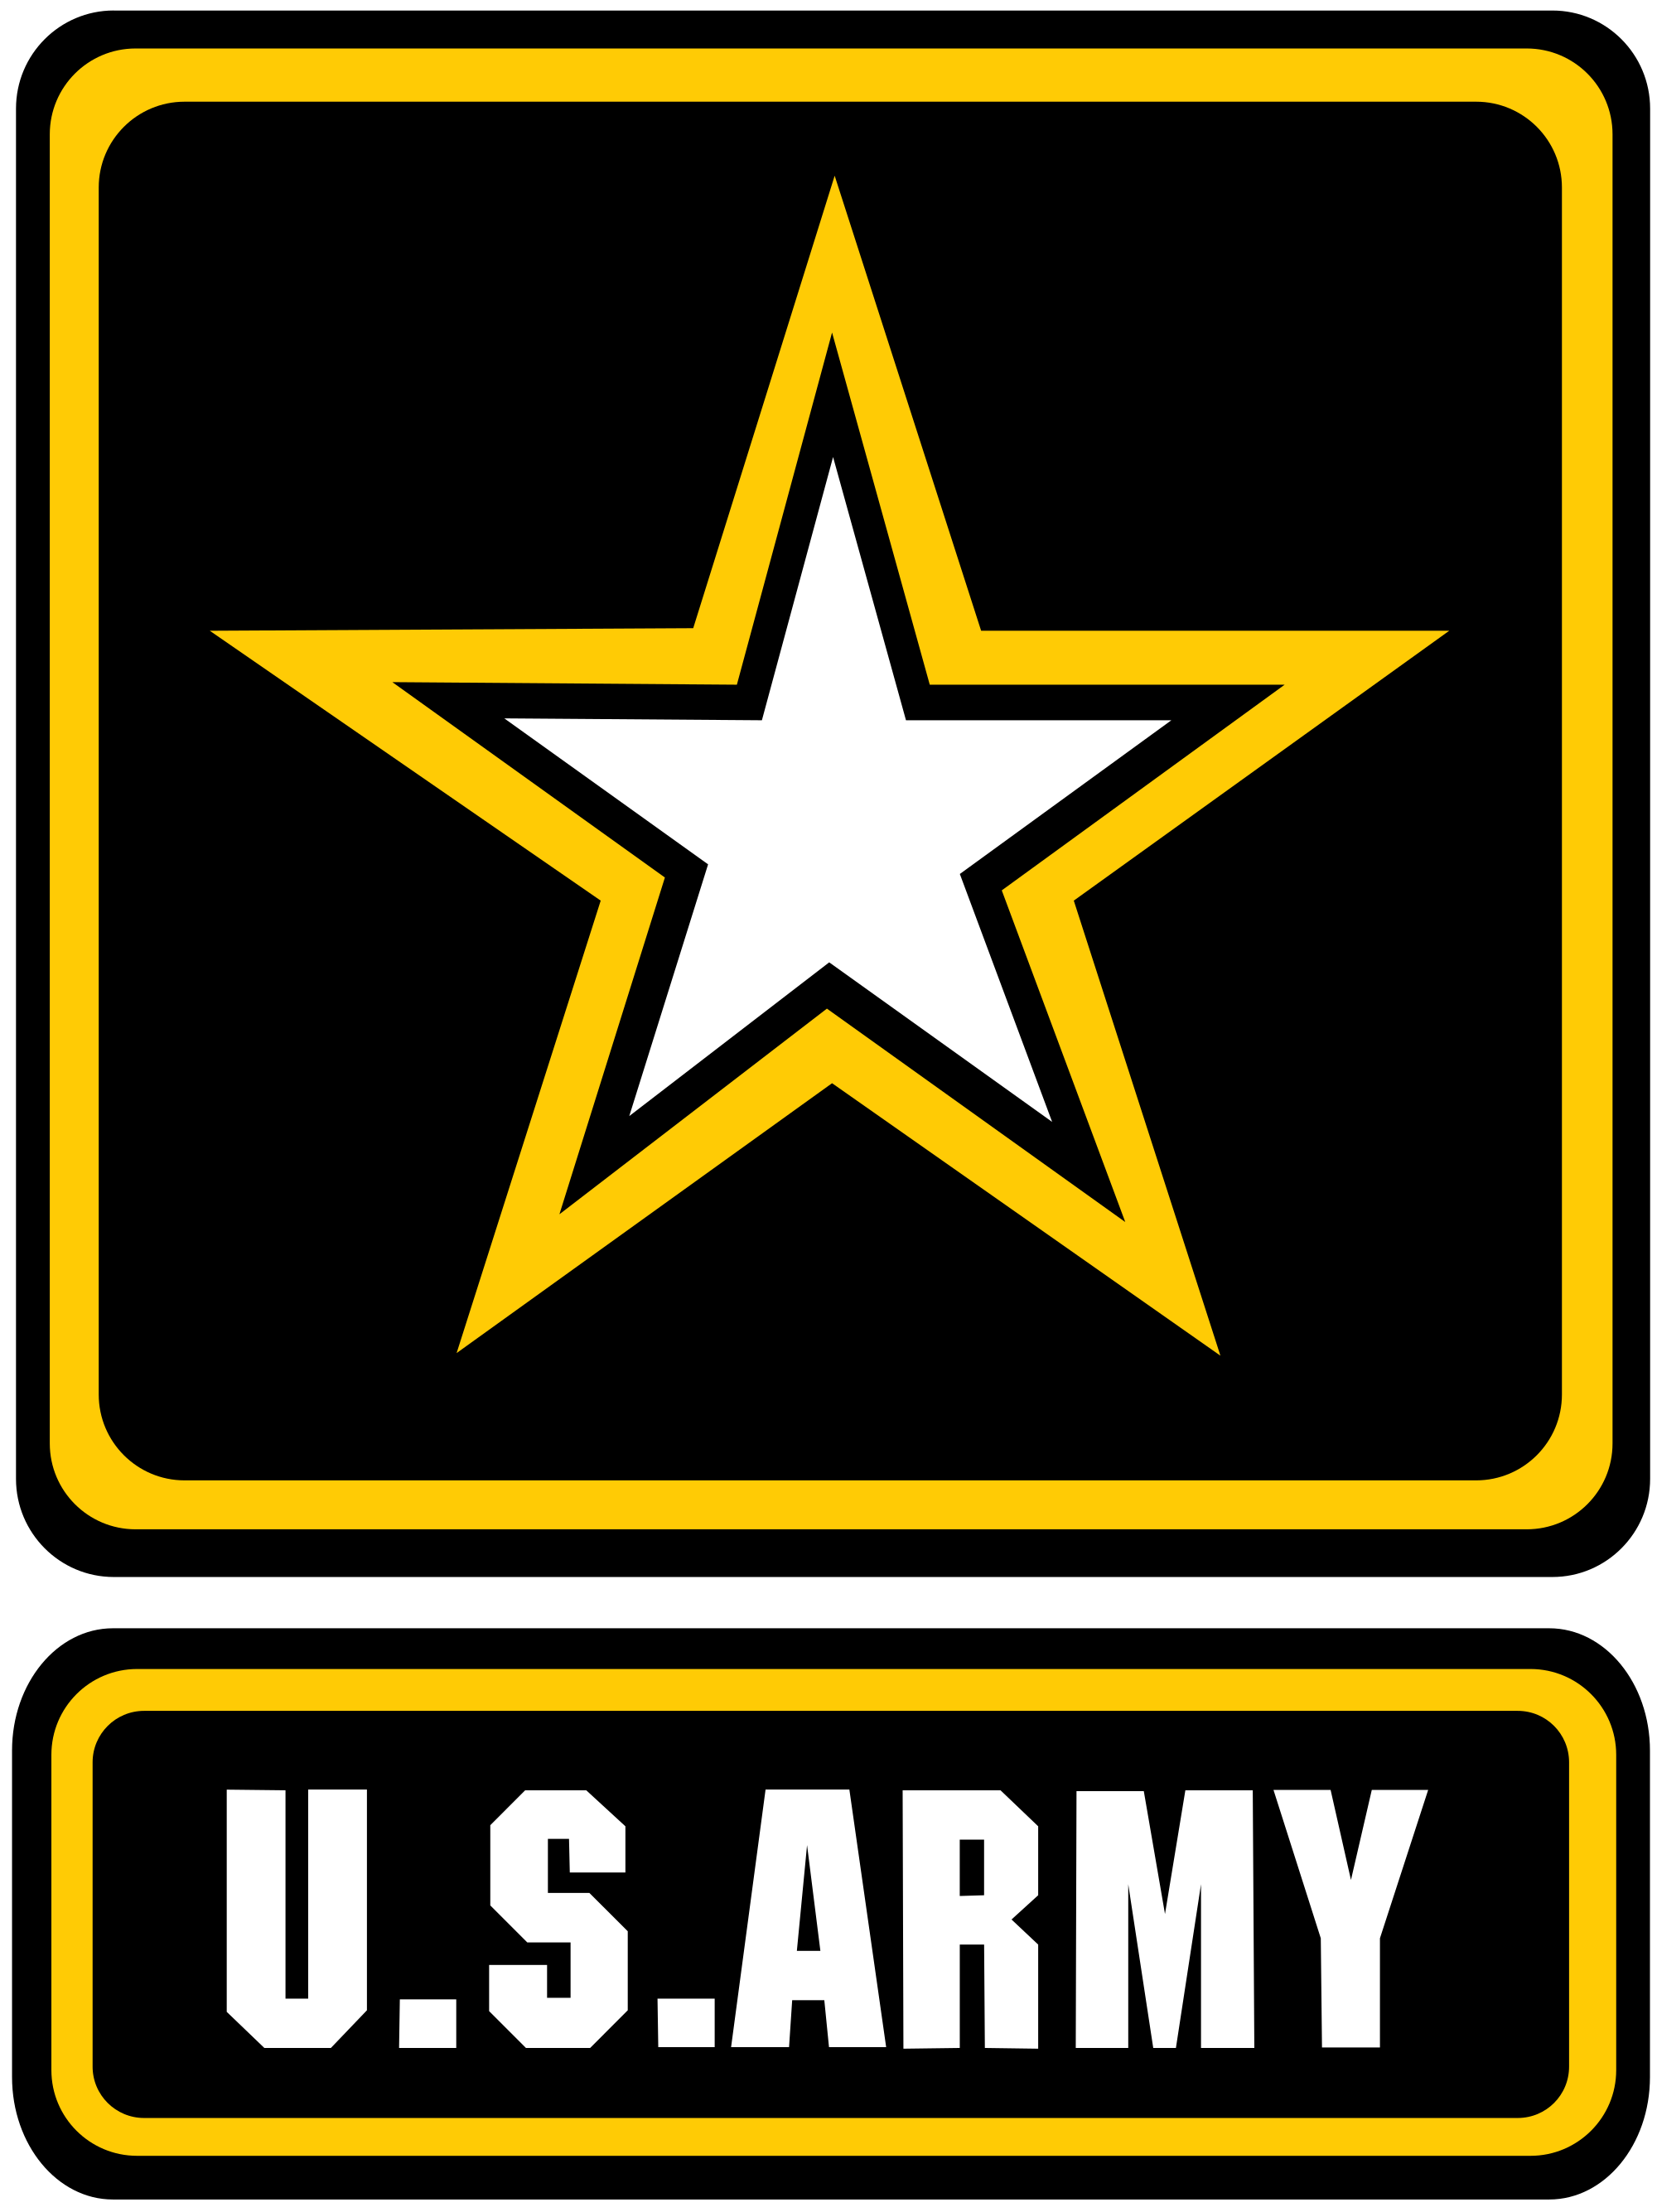 US Army-1